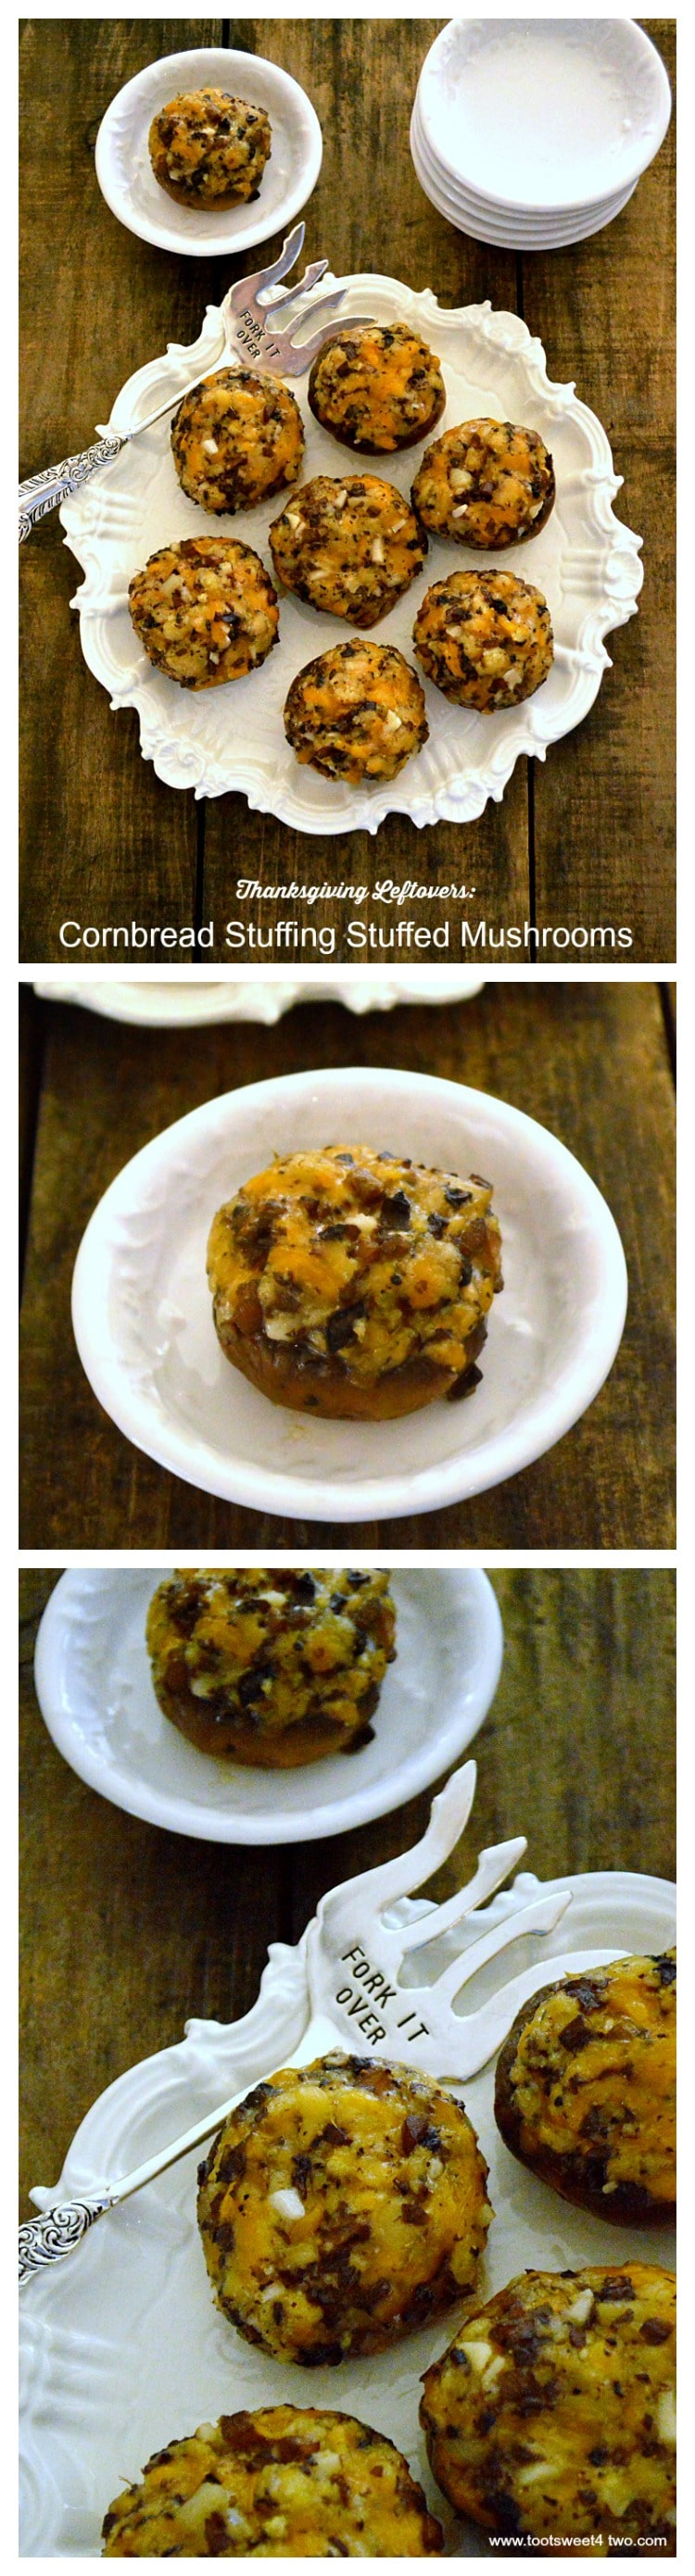 Cornbread Stuffing Stuffed Mushrooms collage